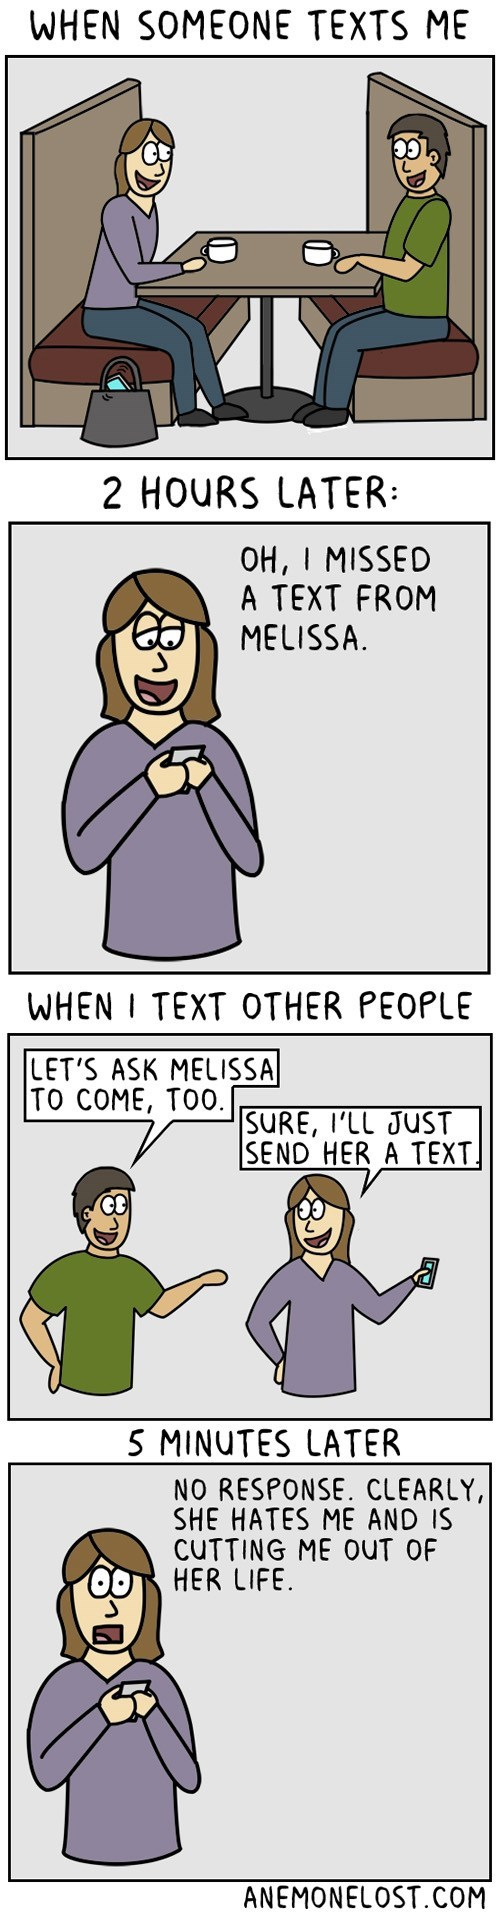 web-comics-texting-anxiety-vs-who-cares-too-real